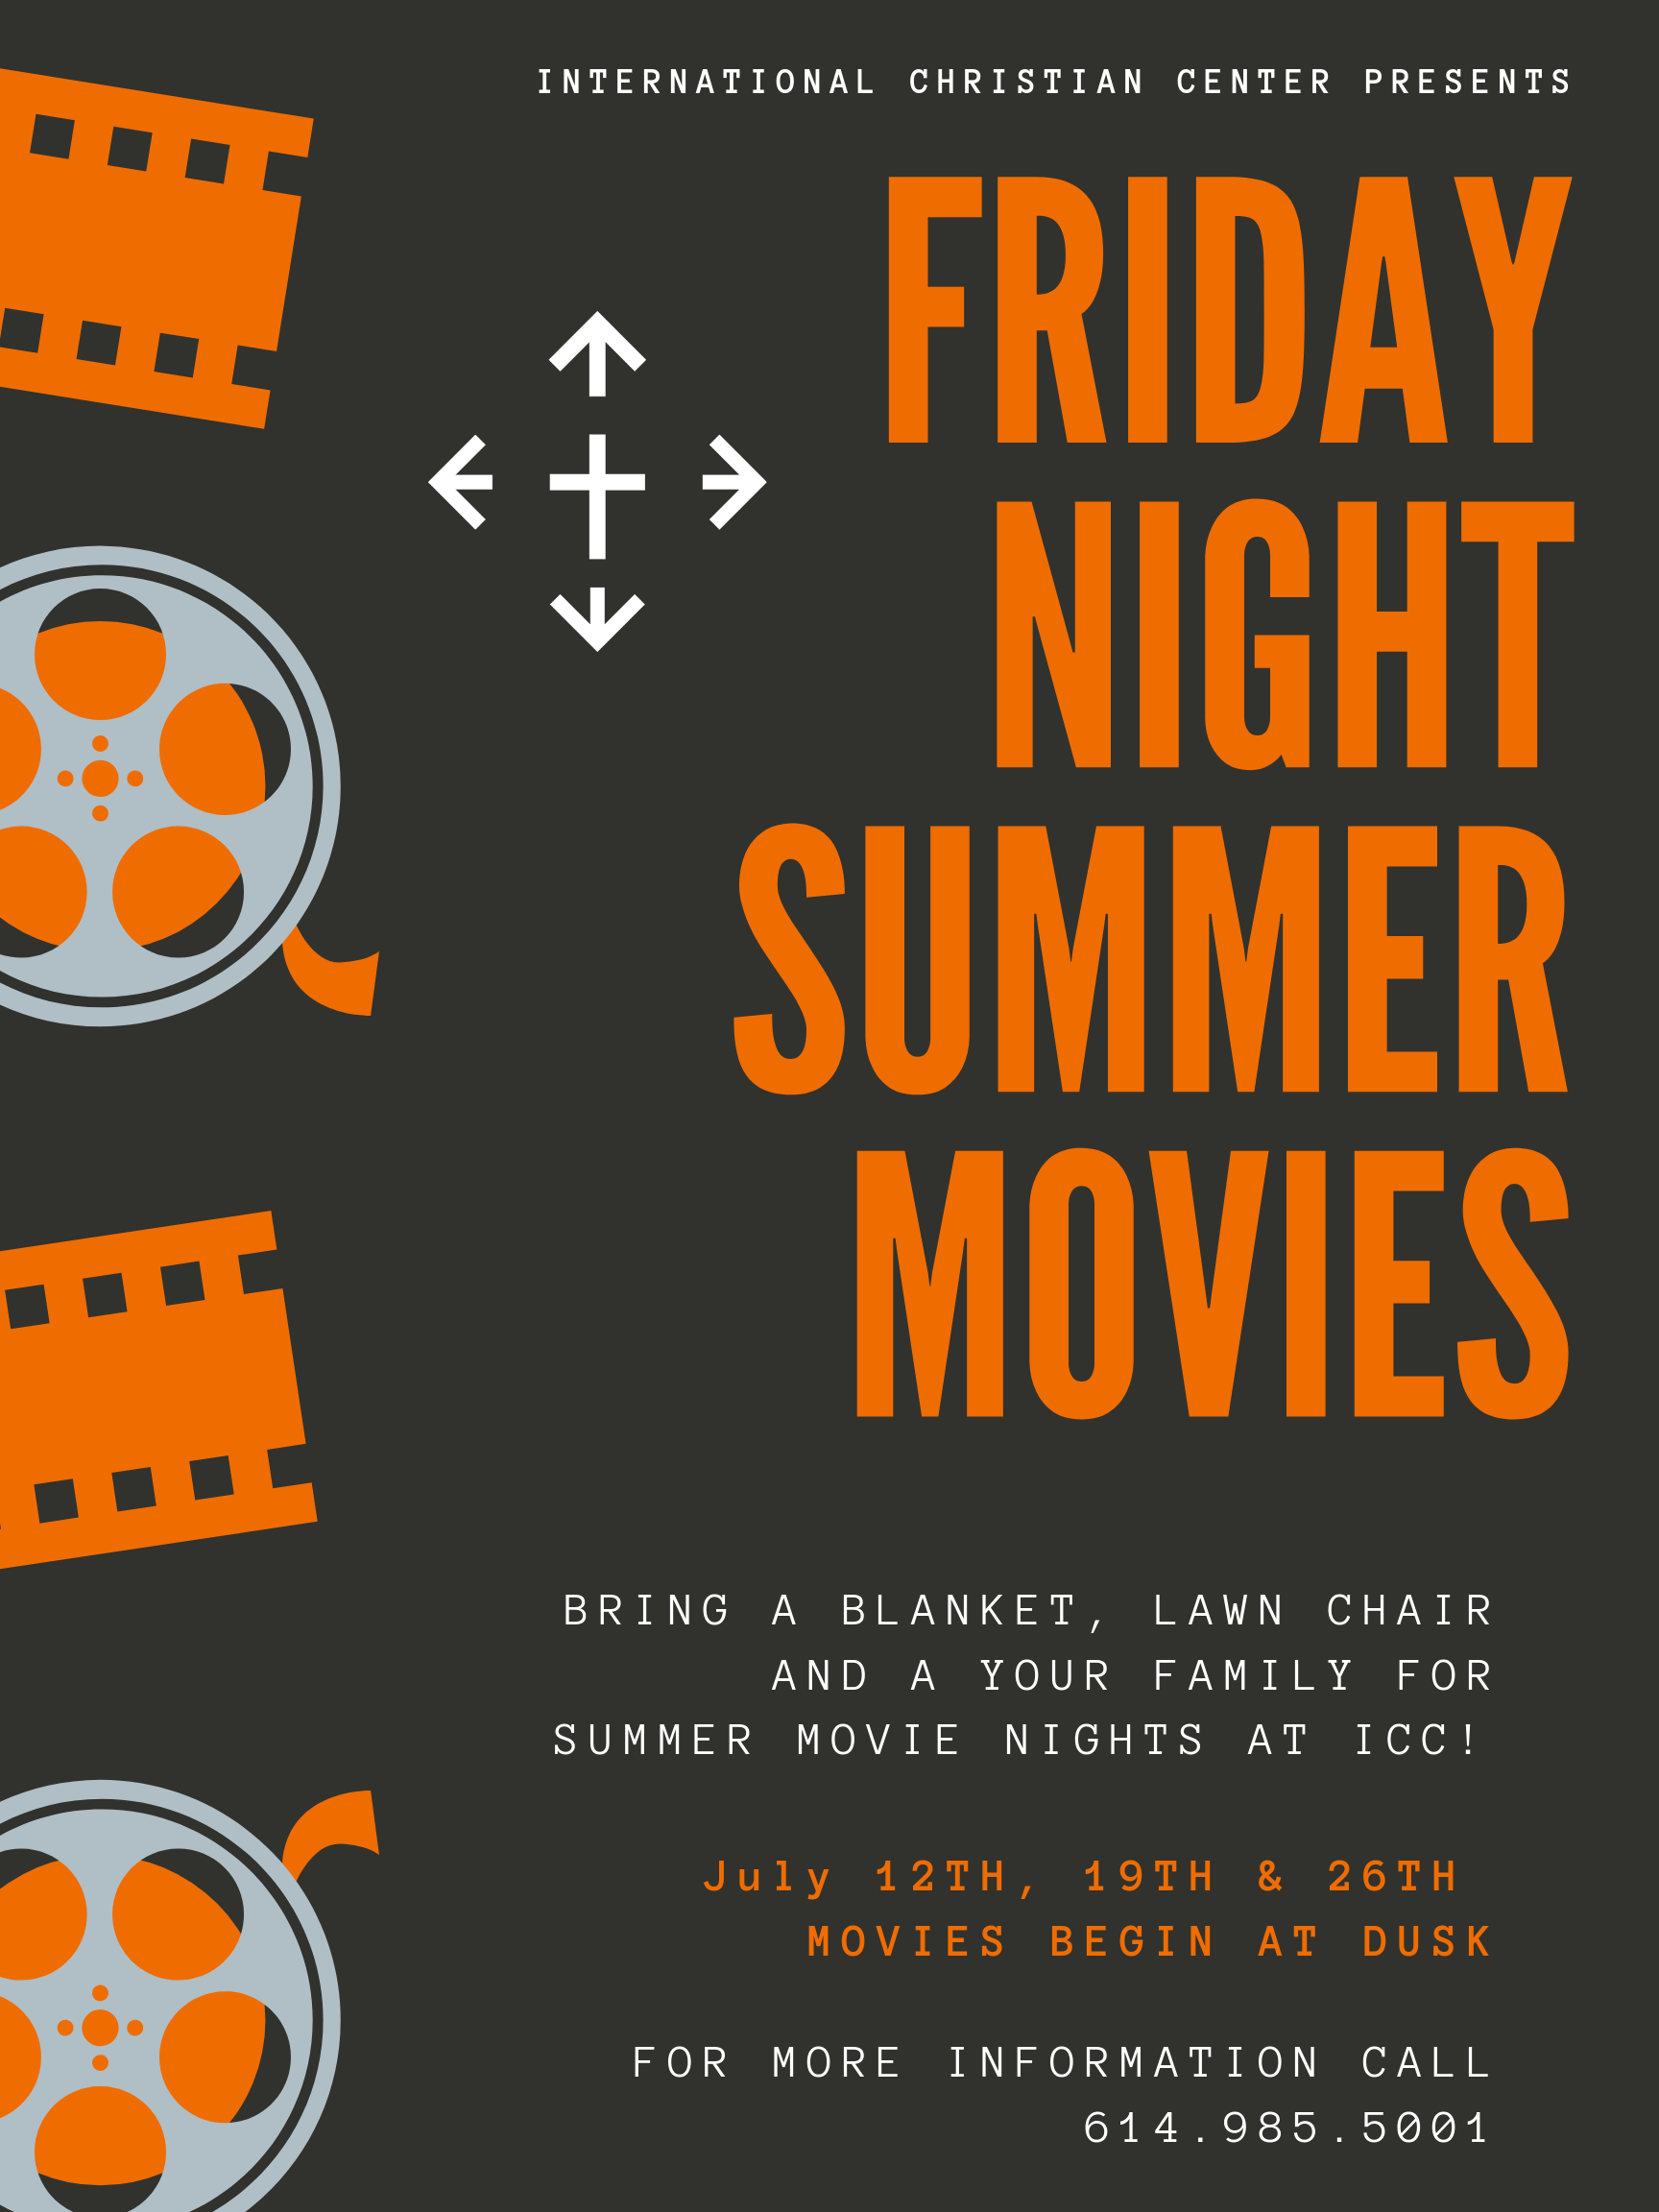 MOVIE NIGHTS IN JULY 1.0 (1).png